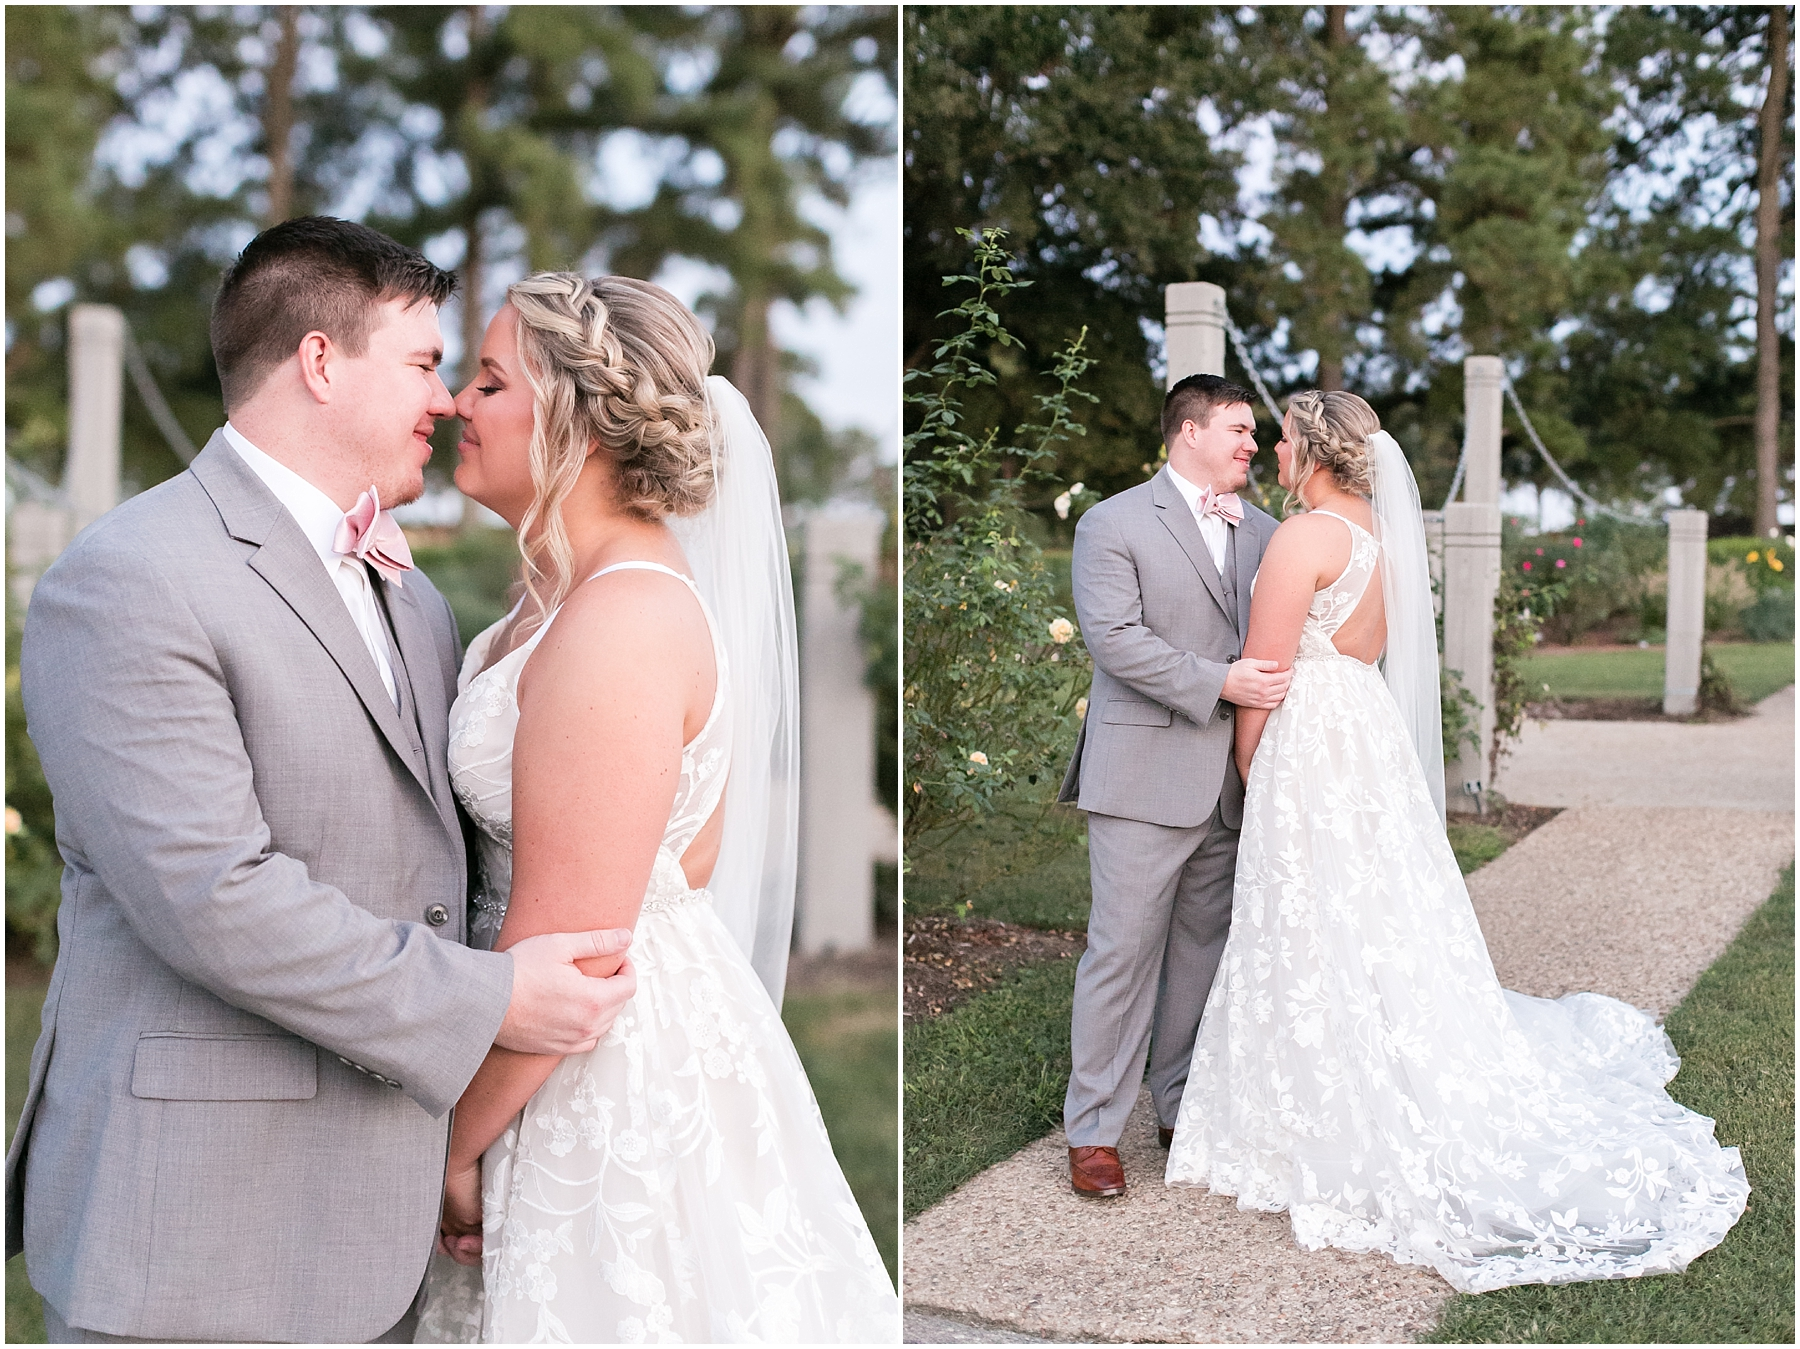 romantic bride and groom portrait at norfolk botanical gardens wedding day, jessica ryan photography, fluttering flowers, jessica ryan photography, studio i do, blush by hayley paige wedding dress, blushtones, flawless onsite, rose garden